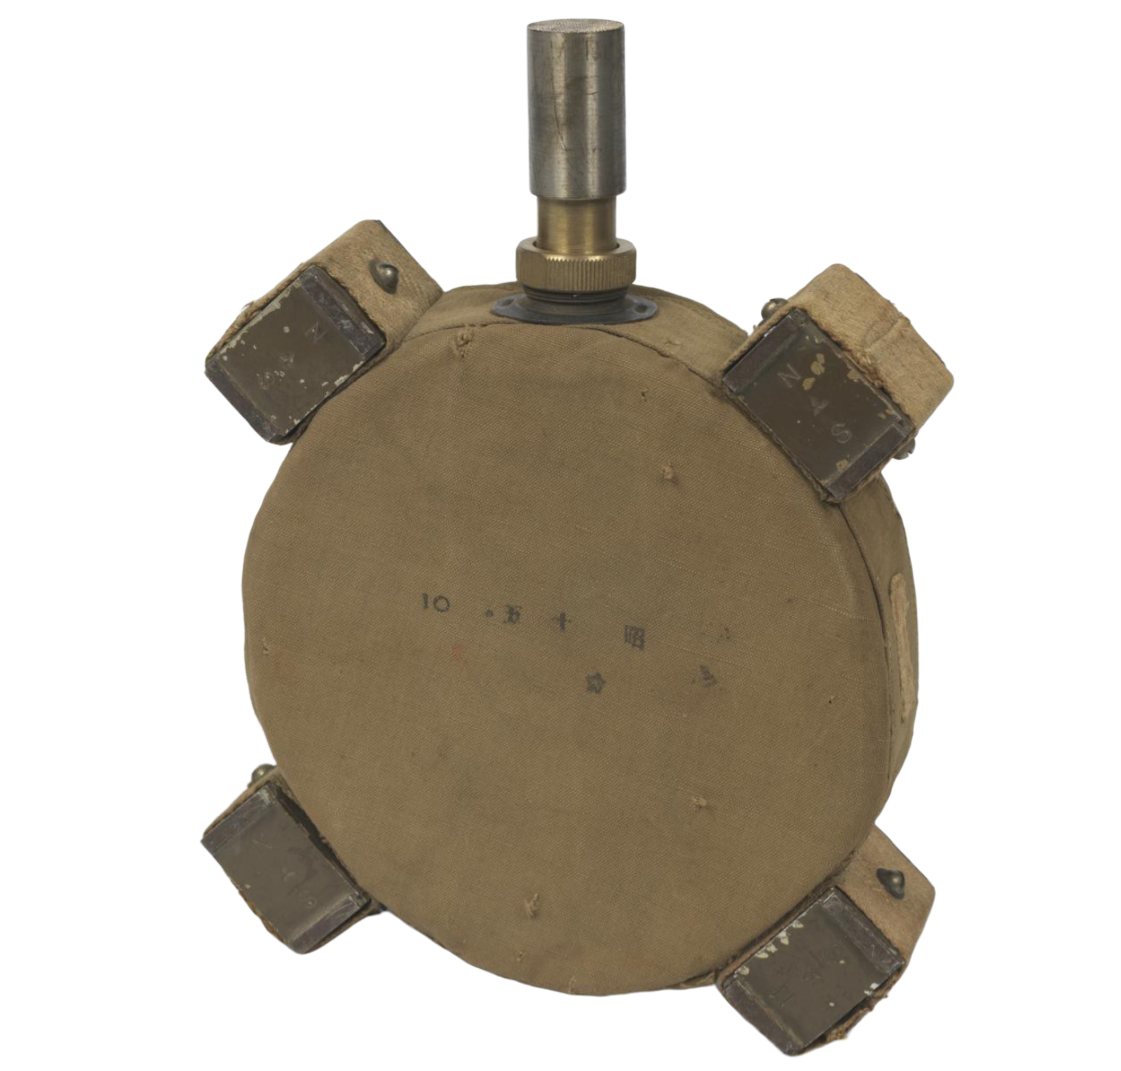 Type 99 Magnetic Mine